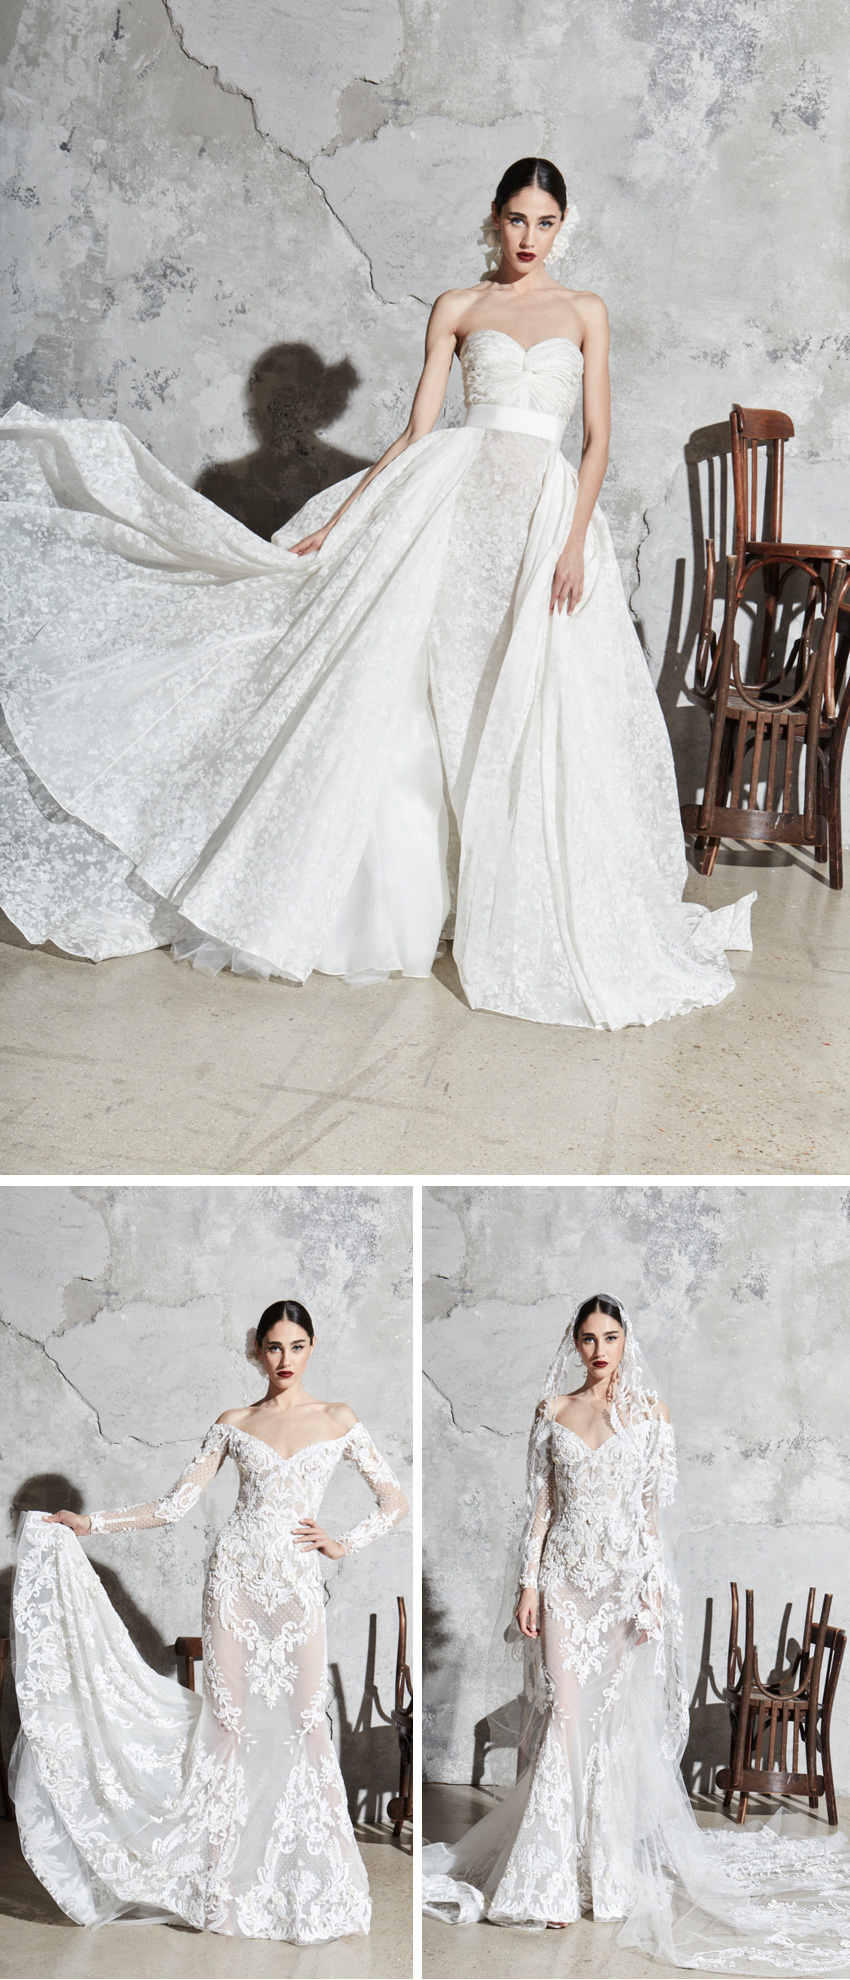 Zuhair Murad, Zuhair Murad Wedding Dress, Zuhair Murad Bride, Wedding Dresses, Spring 2020 Wedding Dresses, Bridal Collections, New York Bridal Fashion Week, Perfect Wedding Magazine, Perfect Wedding Blog